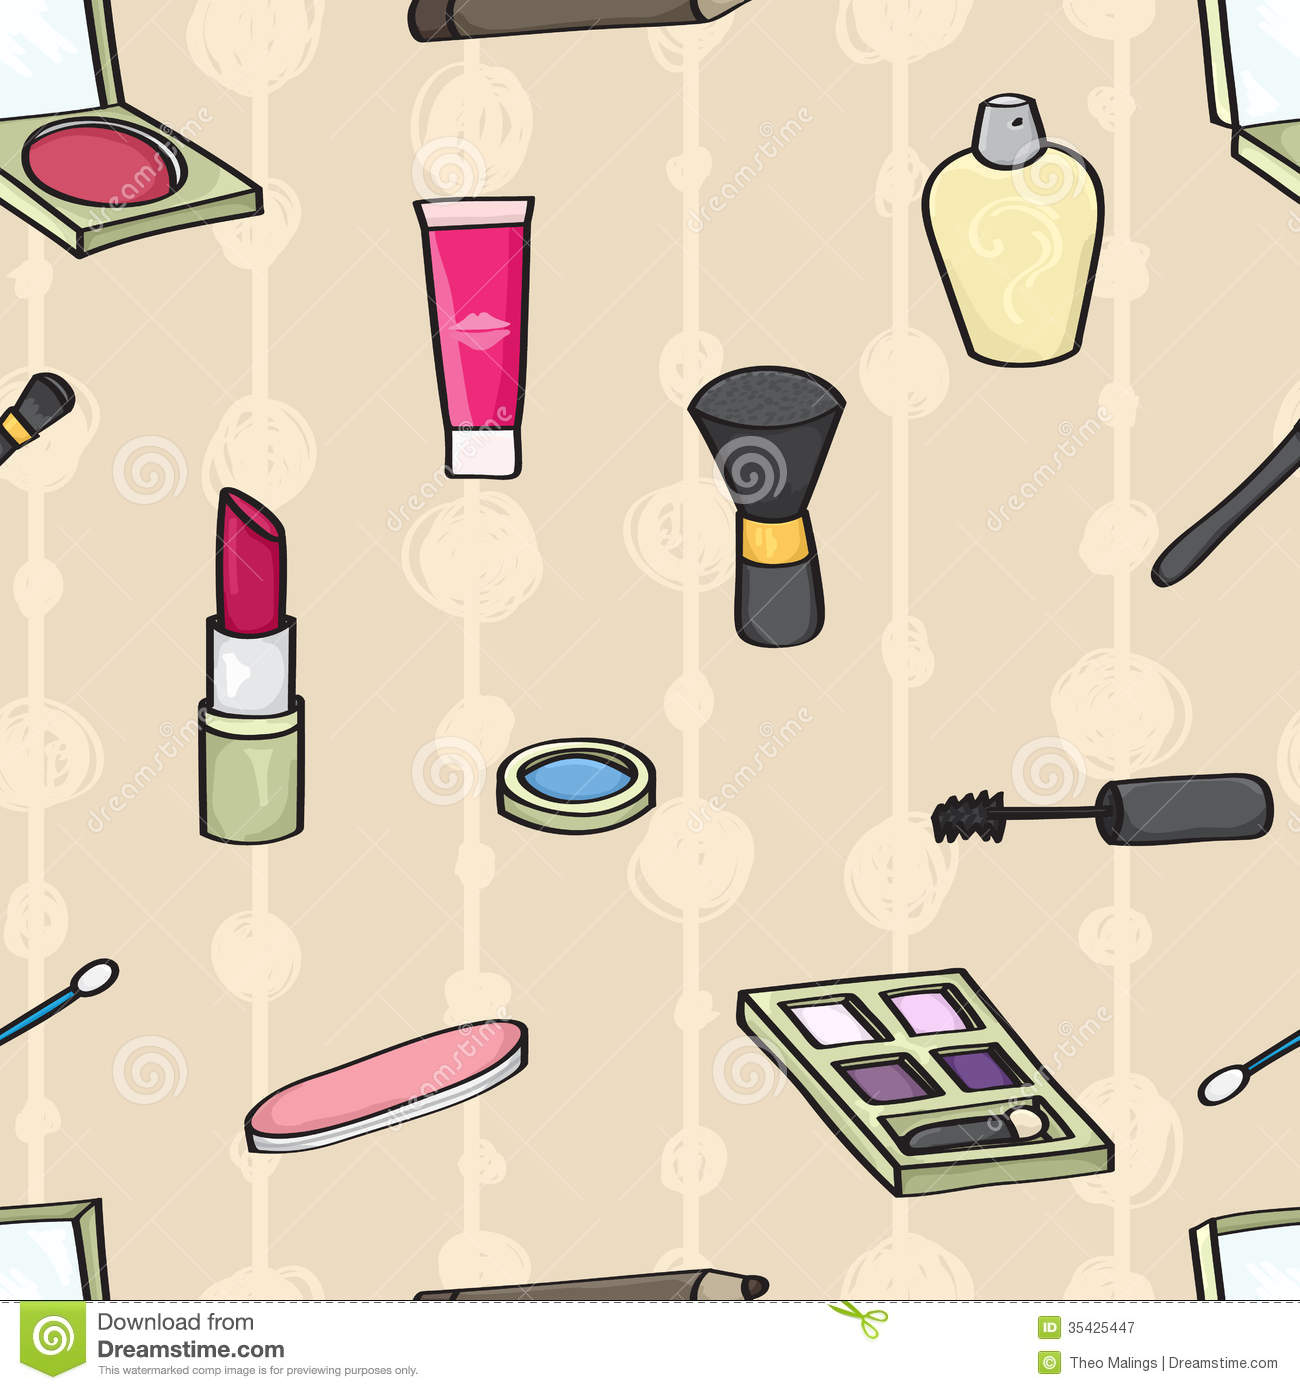 Great Cartoon Makeup Wallpaper - cartoon-cosmetics-seamless-background-tile-style-beige-35425447  Graphic_579348.jpg